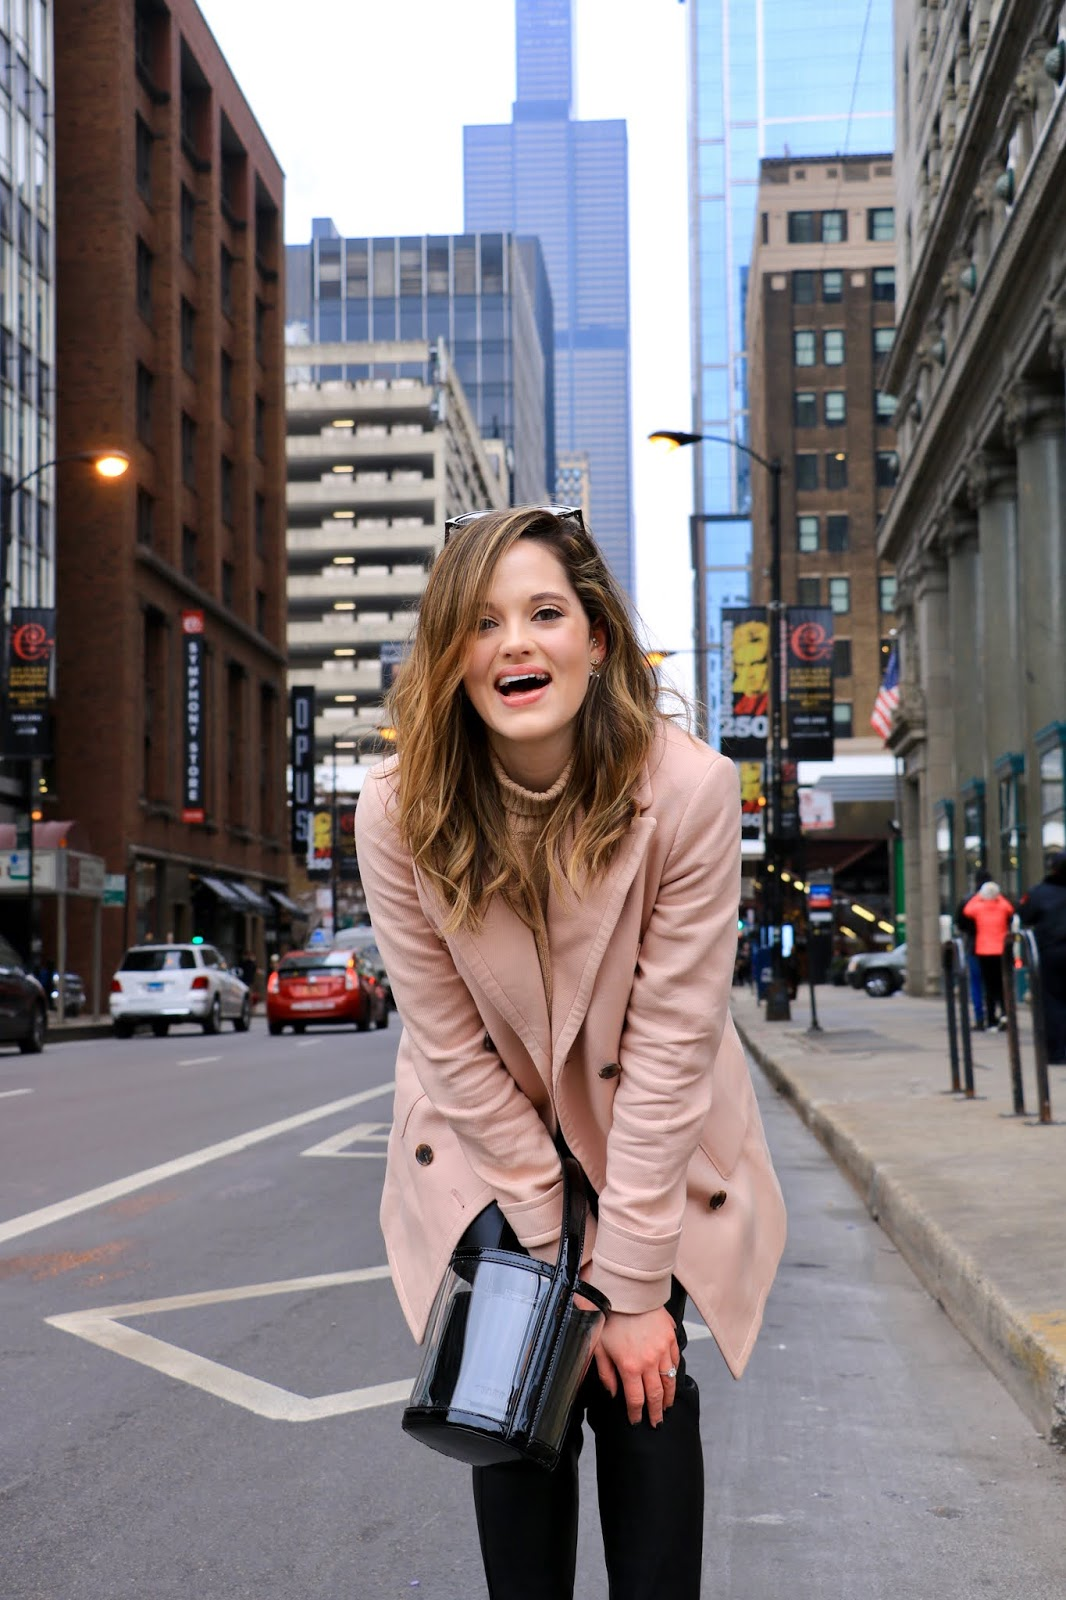 Chicago fashion blogger Kathleen Harper's street style.